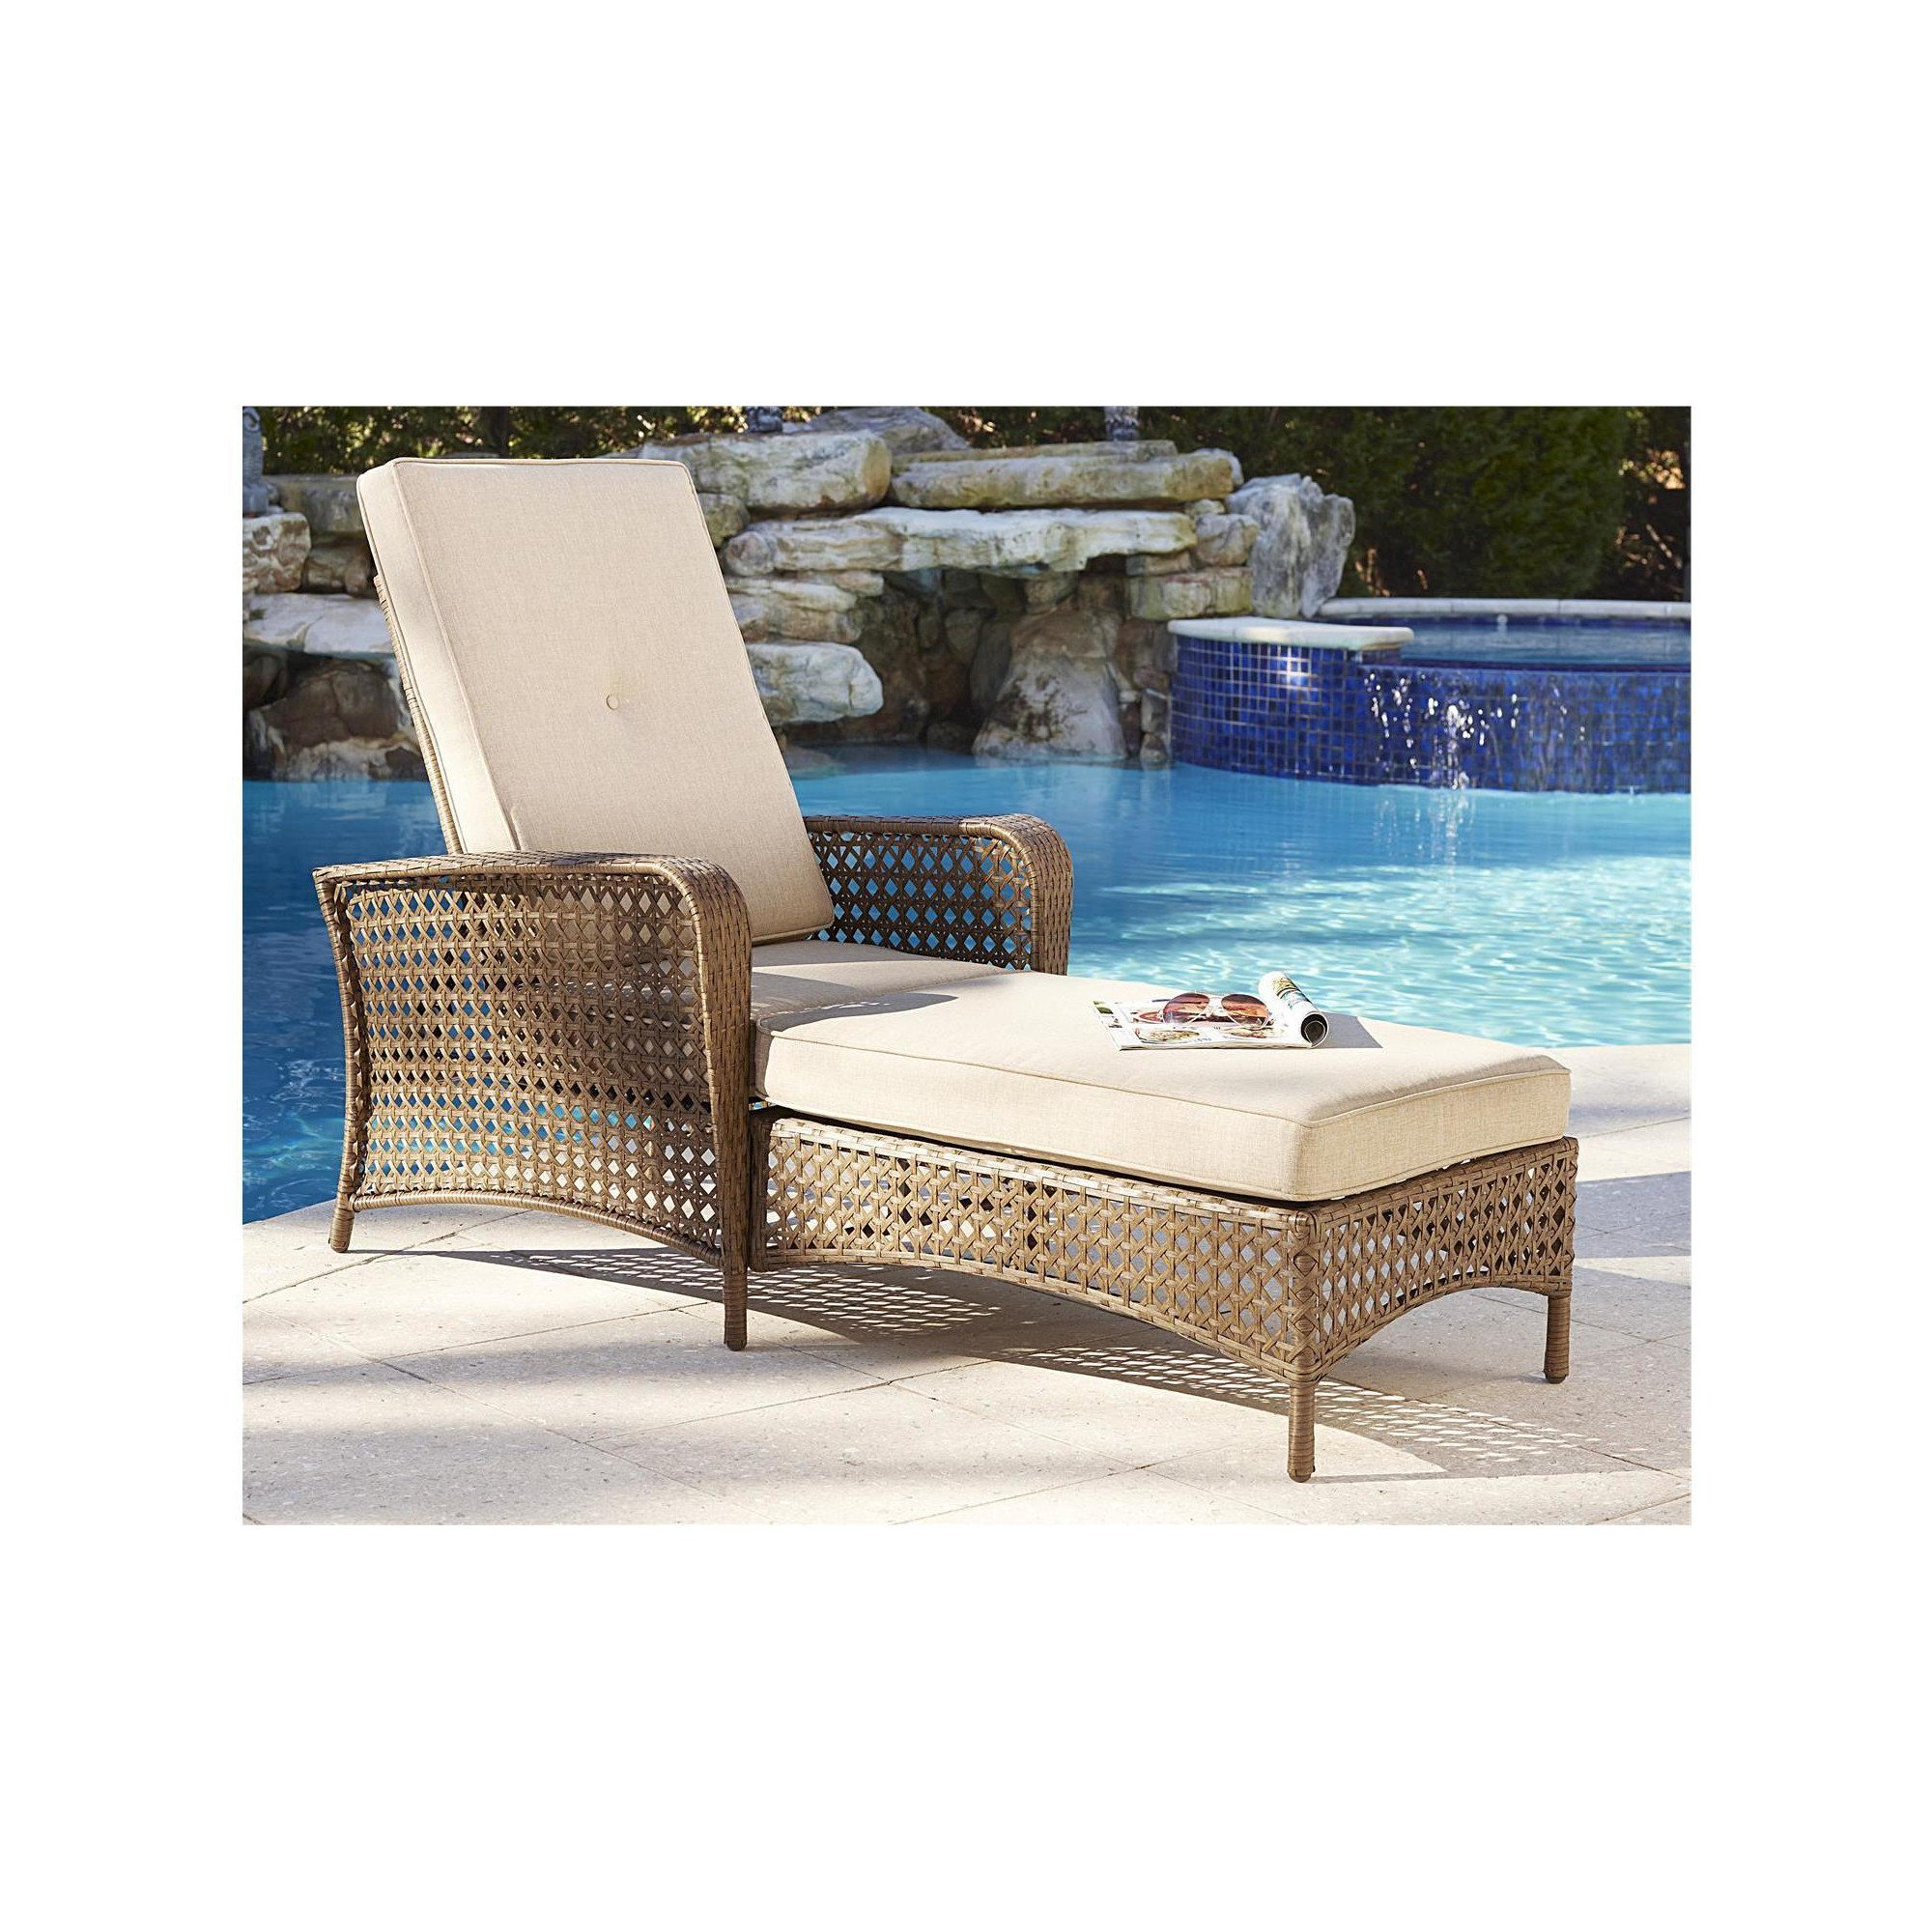 Outdoor Wicker Adjustable Chaise Lounges With Cushions Intended For 2020 Lakewood Ranch Steel Woven Wicker Outdoor Adjustable Chaise (View 15 of 25)